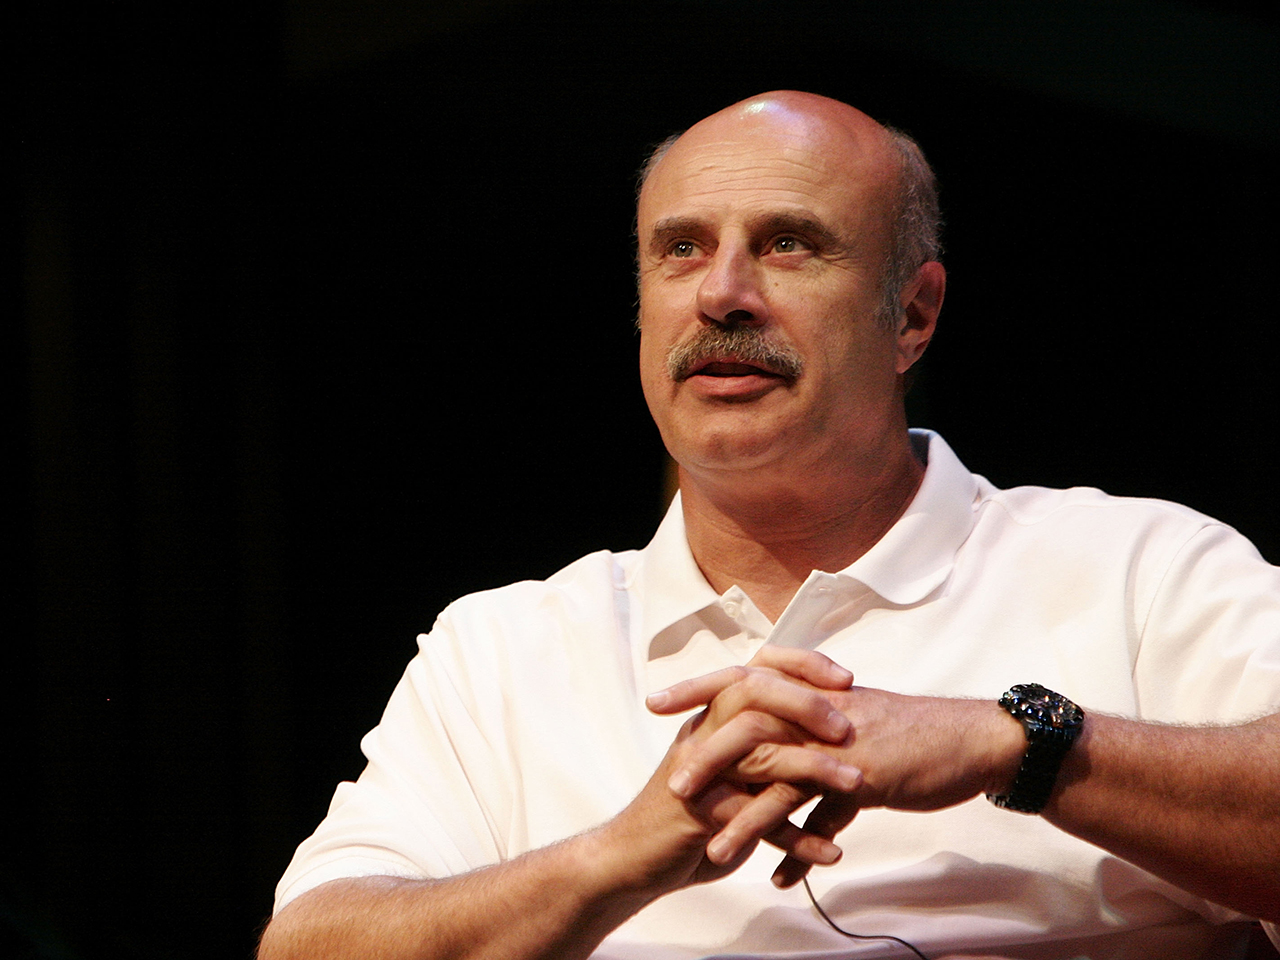 IMAGE: Dr. Phil